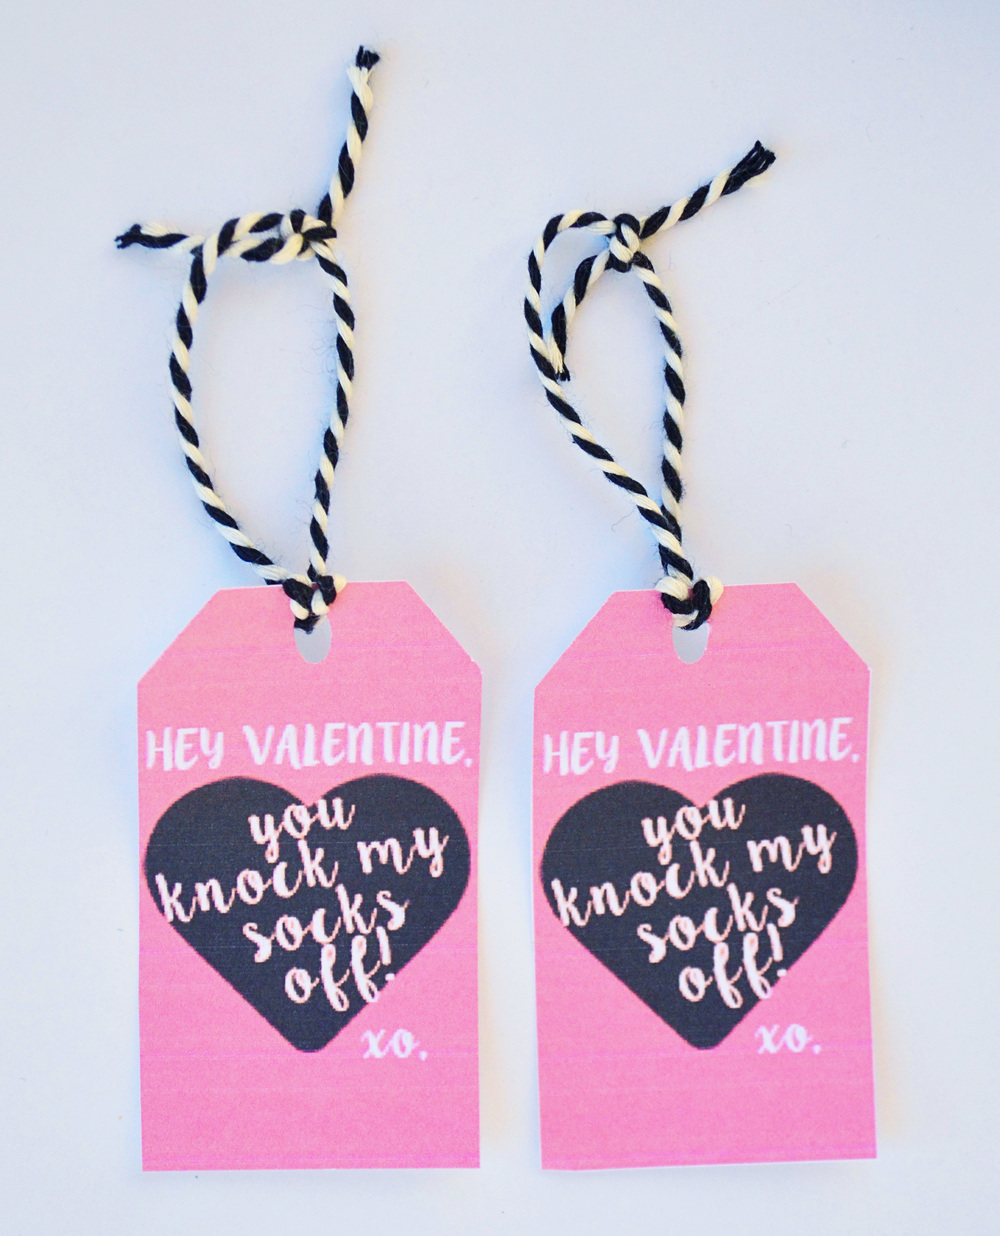 Valentines Day Knock My Socks Off Sock Printable | Momma Society-The Community of Modern Moms